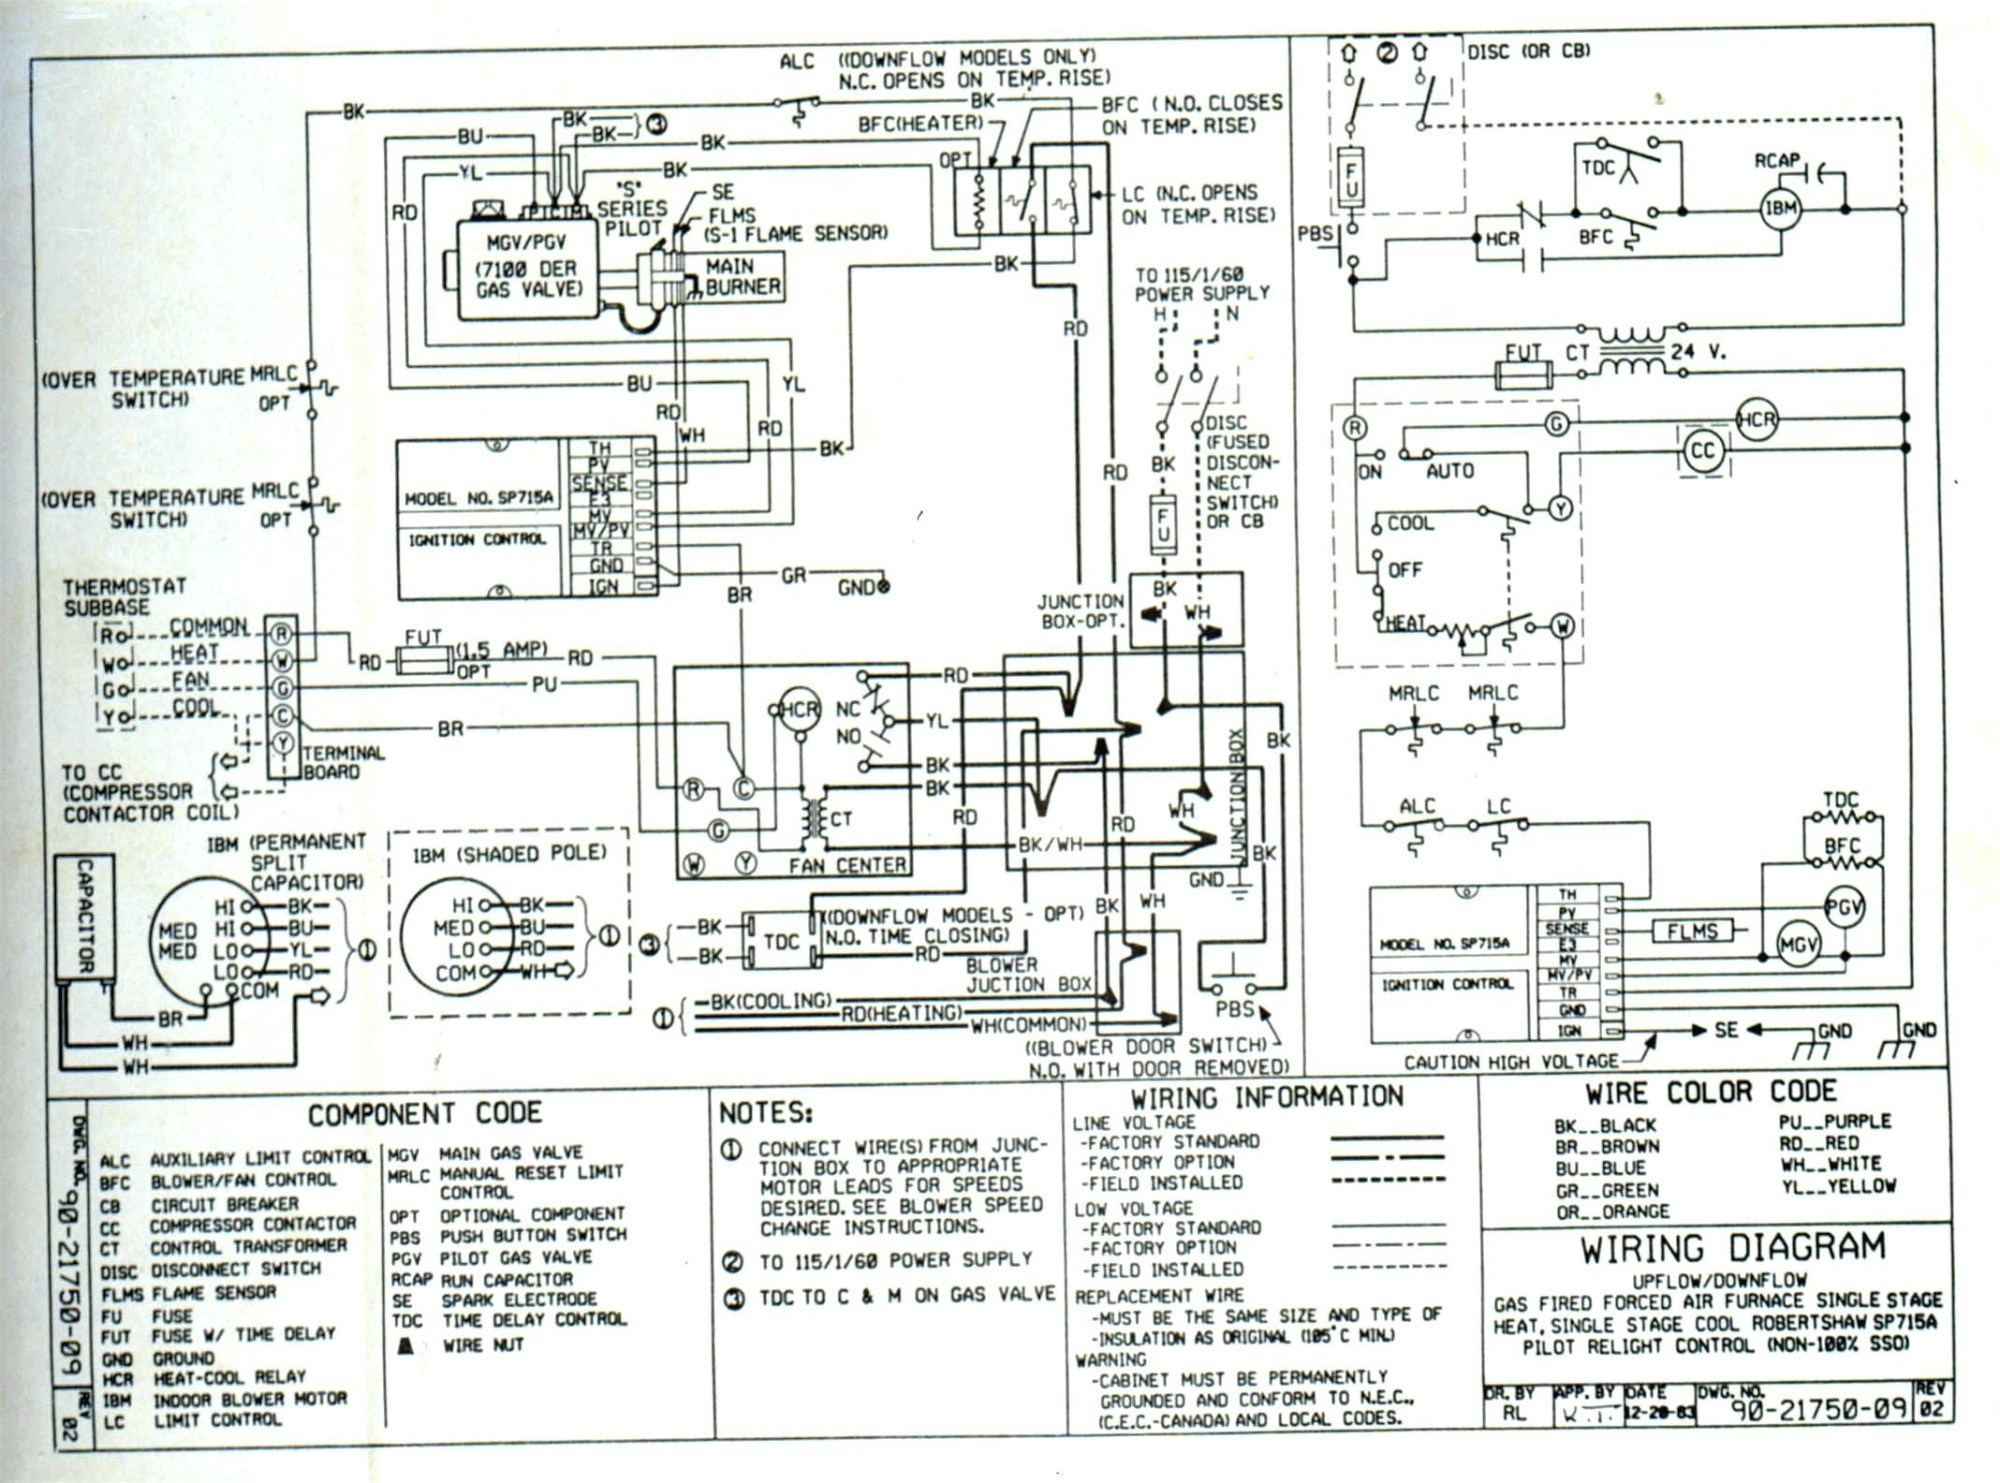 hight resolution of trane heat pump thermostat wiring diagram trane thermostat wiring diagram luxury wiring diagram for trane